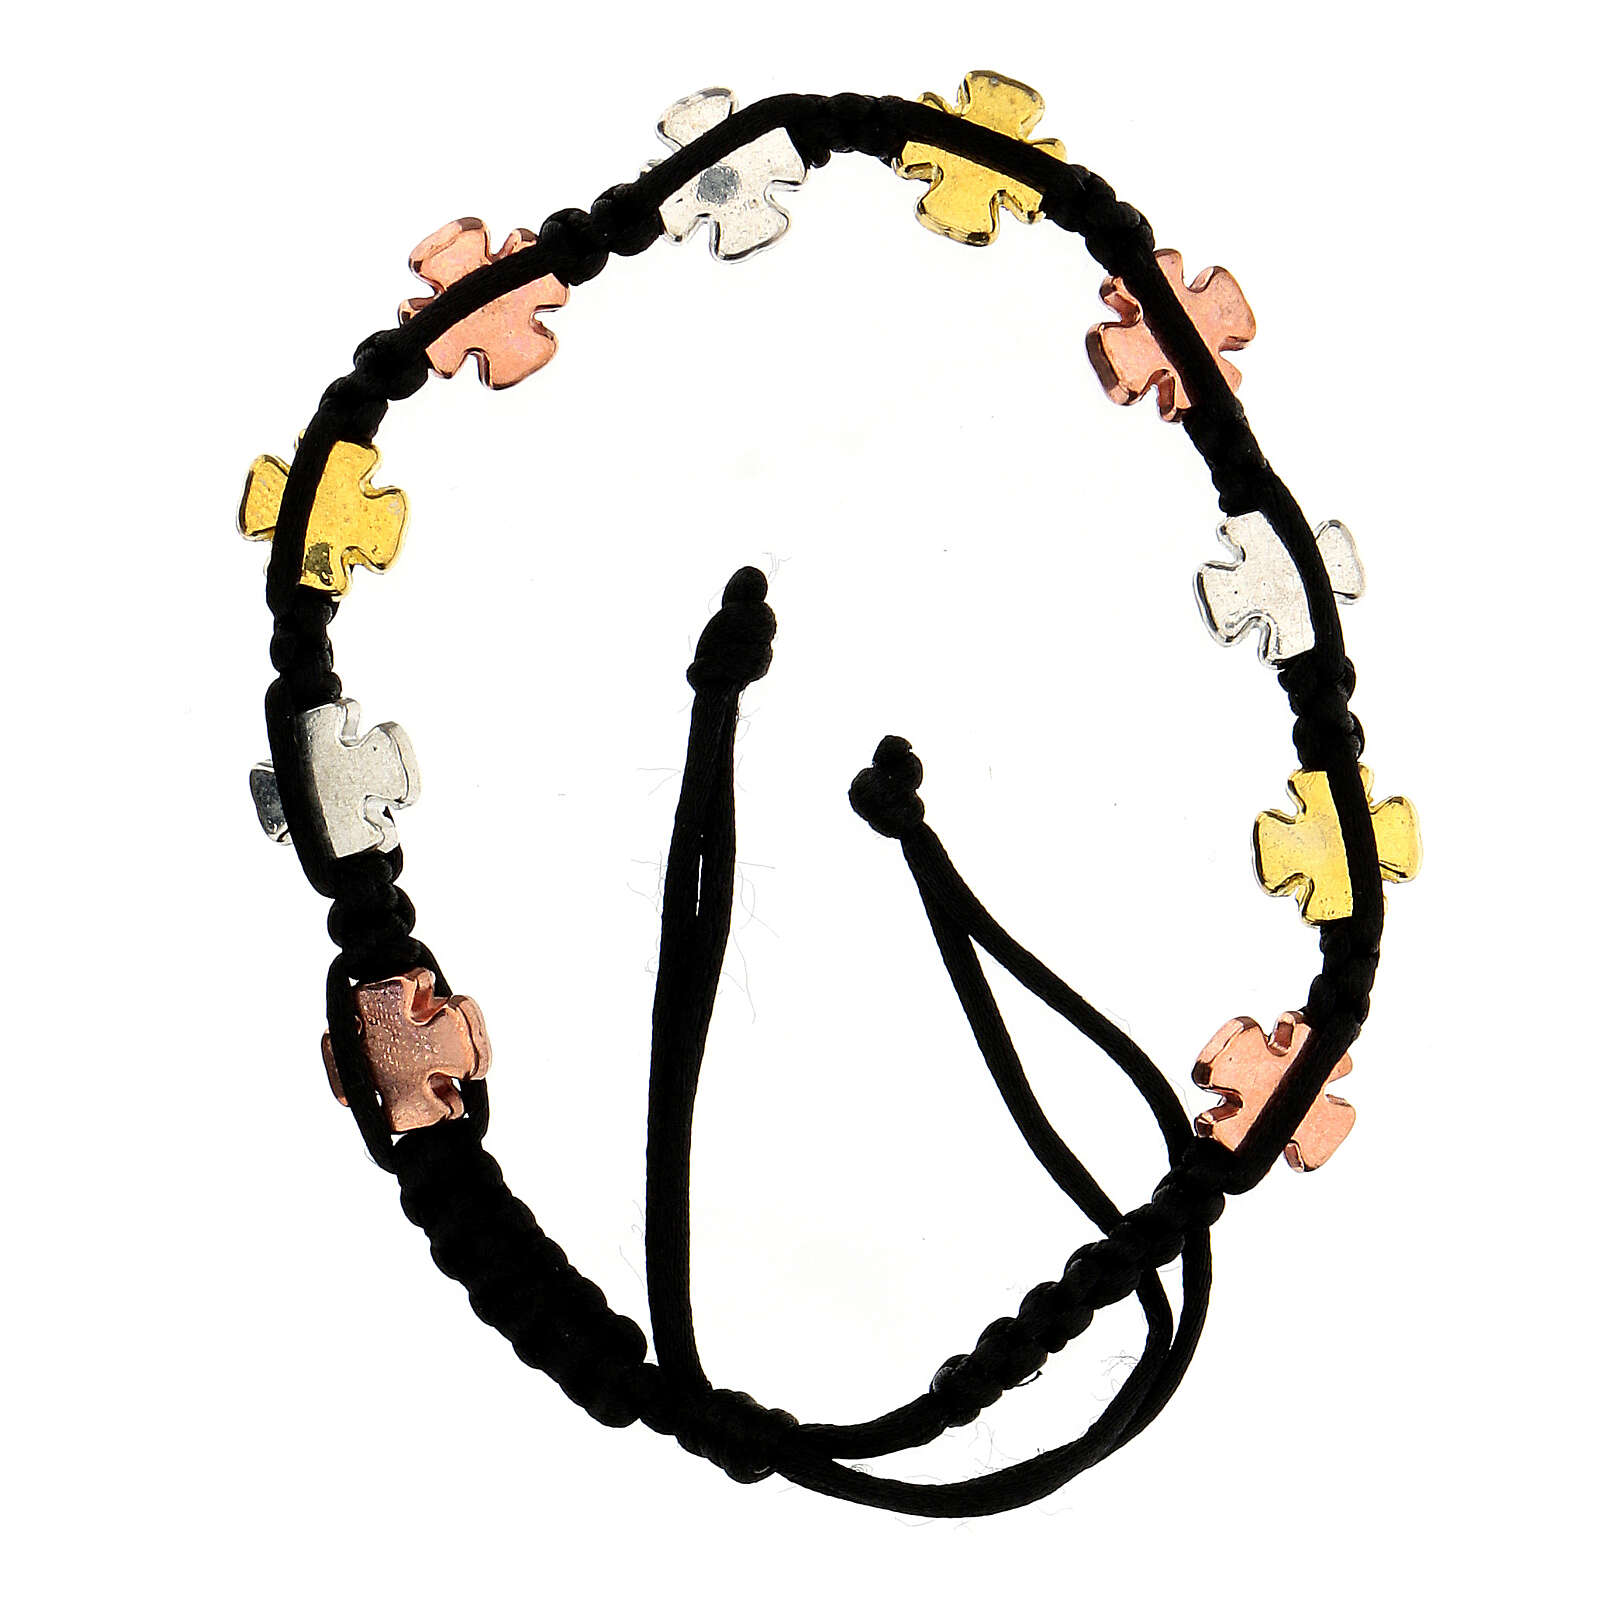 Decade rosary bracelet with adjustable black cord tricolor cross charms 4